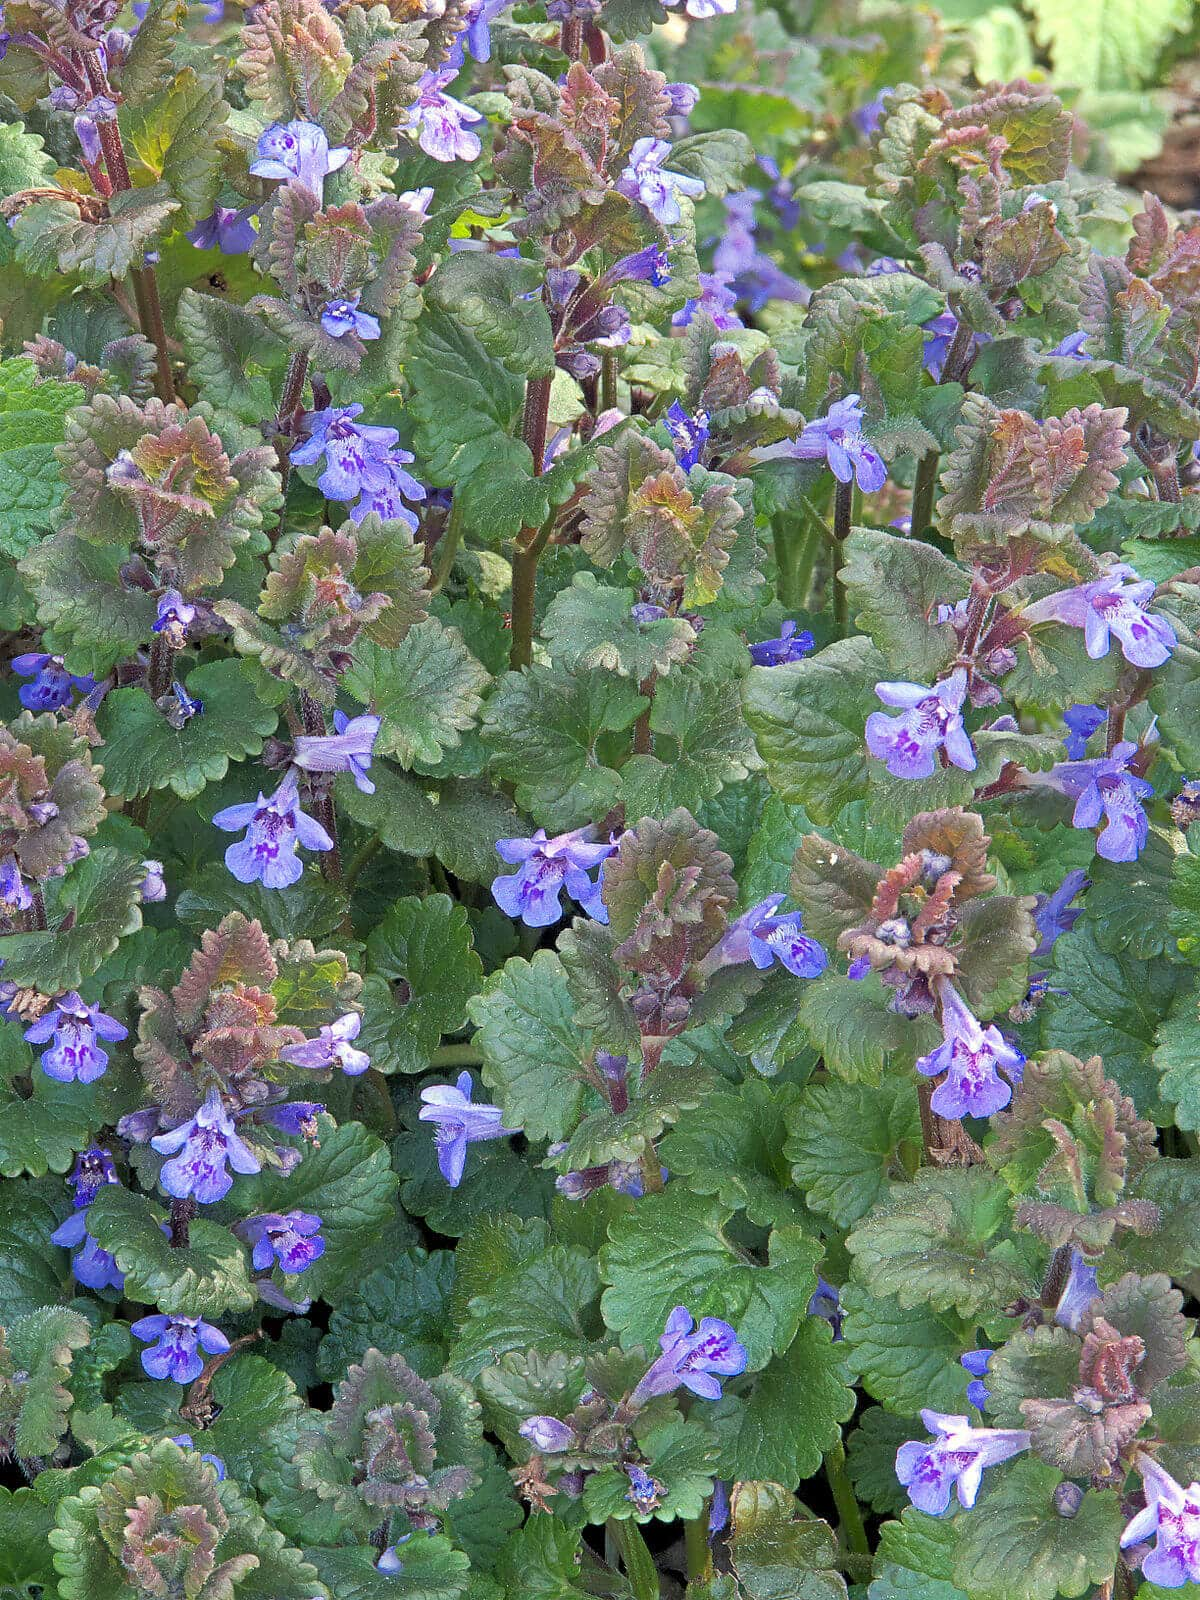 Field of Ground Ivy (Glechoma Hederacea)